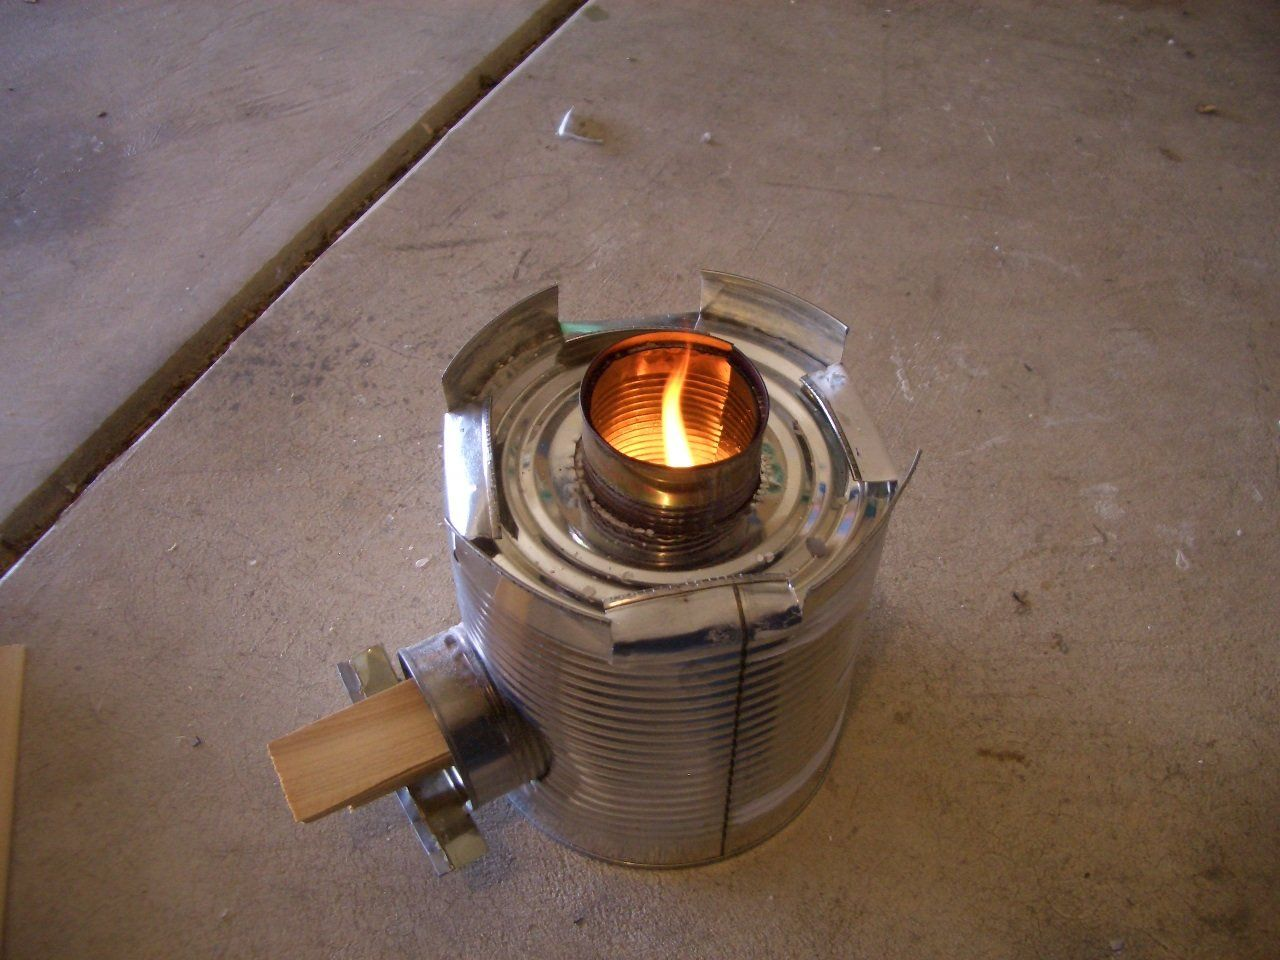 This instructable will show you how to easily make a functional rocket stove from recyclable cans for almost no cost.Items you will need: 1 - No. 10 Can (Standard restaurant size can. Mine was a pineapple chunks can from a local pizza parlor. They gave it to me free.) 4 - Regular soup cans (Standard 10.75oz Campbell's Soup cans) Insulation material. I used Perlite. It's cheap and available at any garden center. I had it on hand for my garden. You can use sand, dirt, ashes, foam, any…